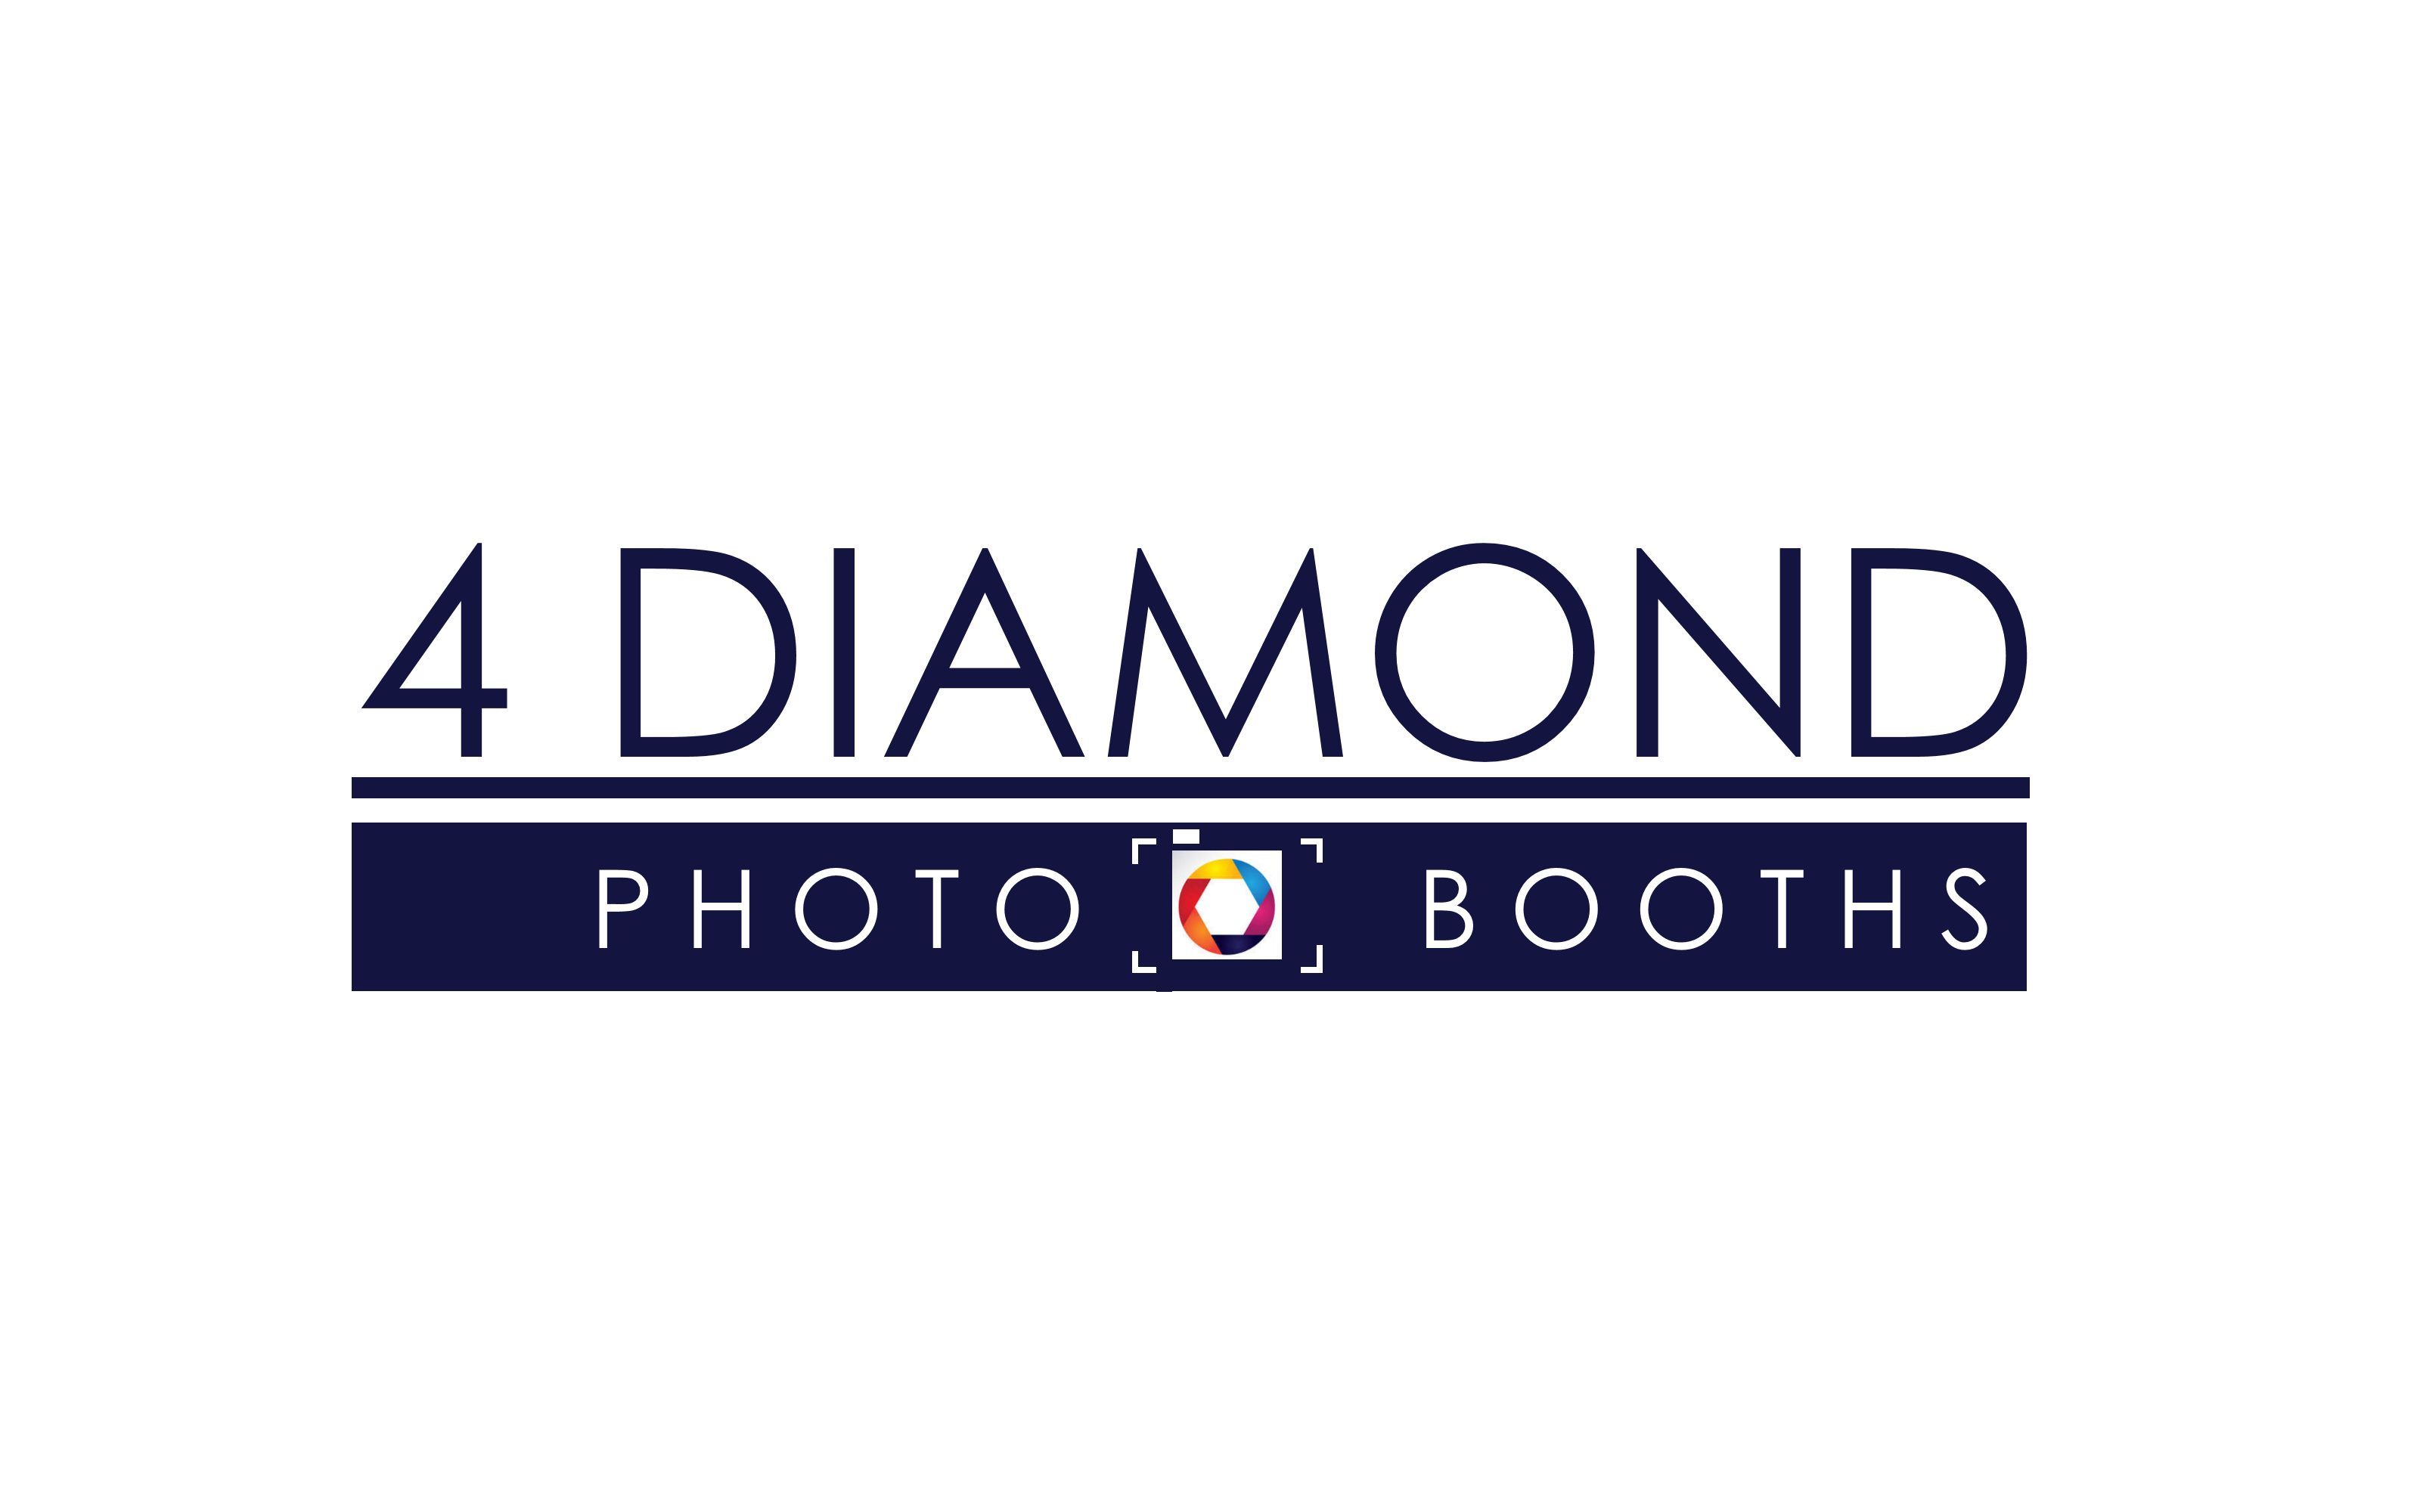 Logo Design by Roberto Bassi - Entry No. 28 in the Logo Design Contest Creative Logo Design for 4 Diamond Photo Booths.